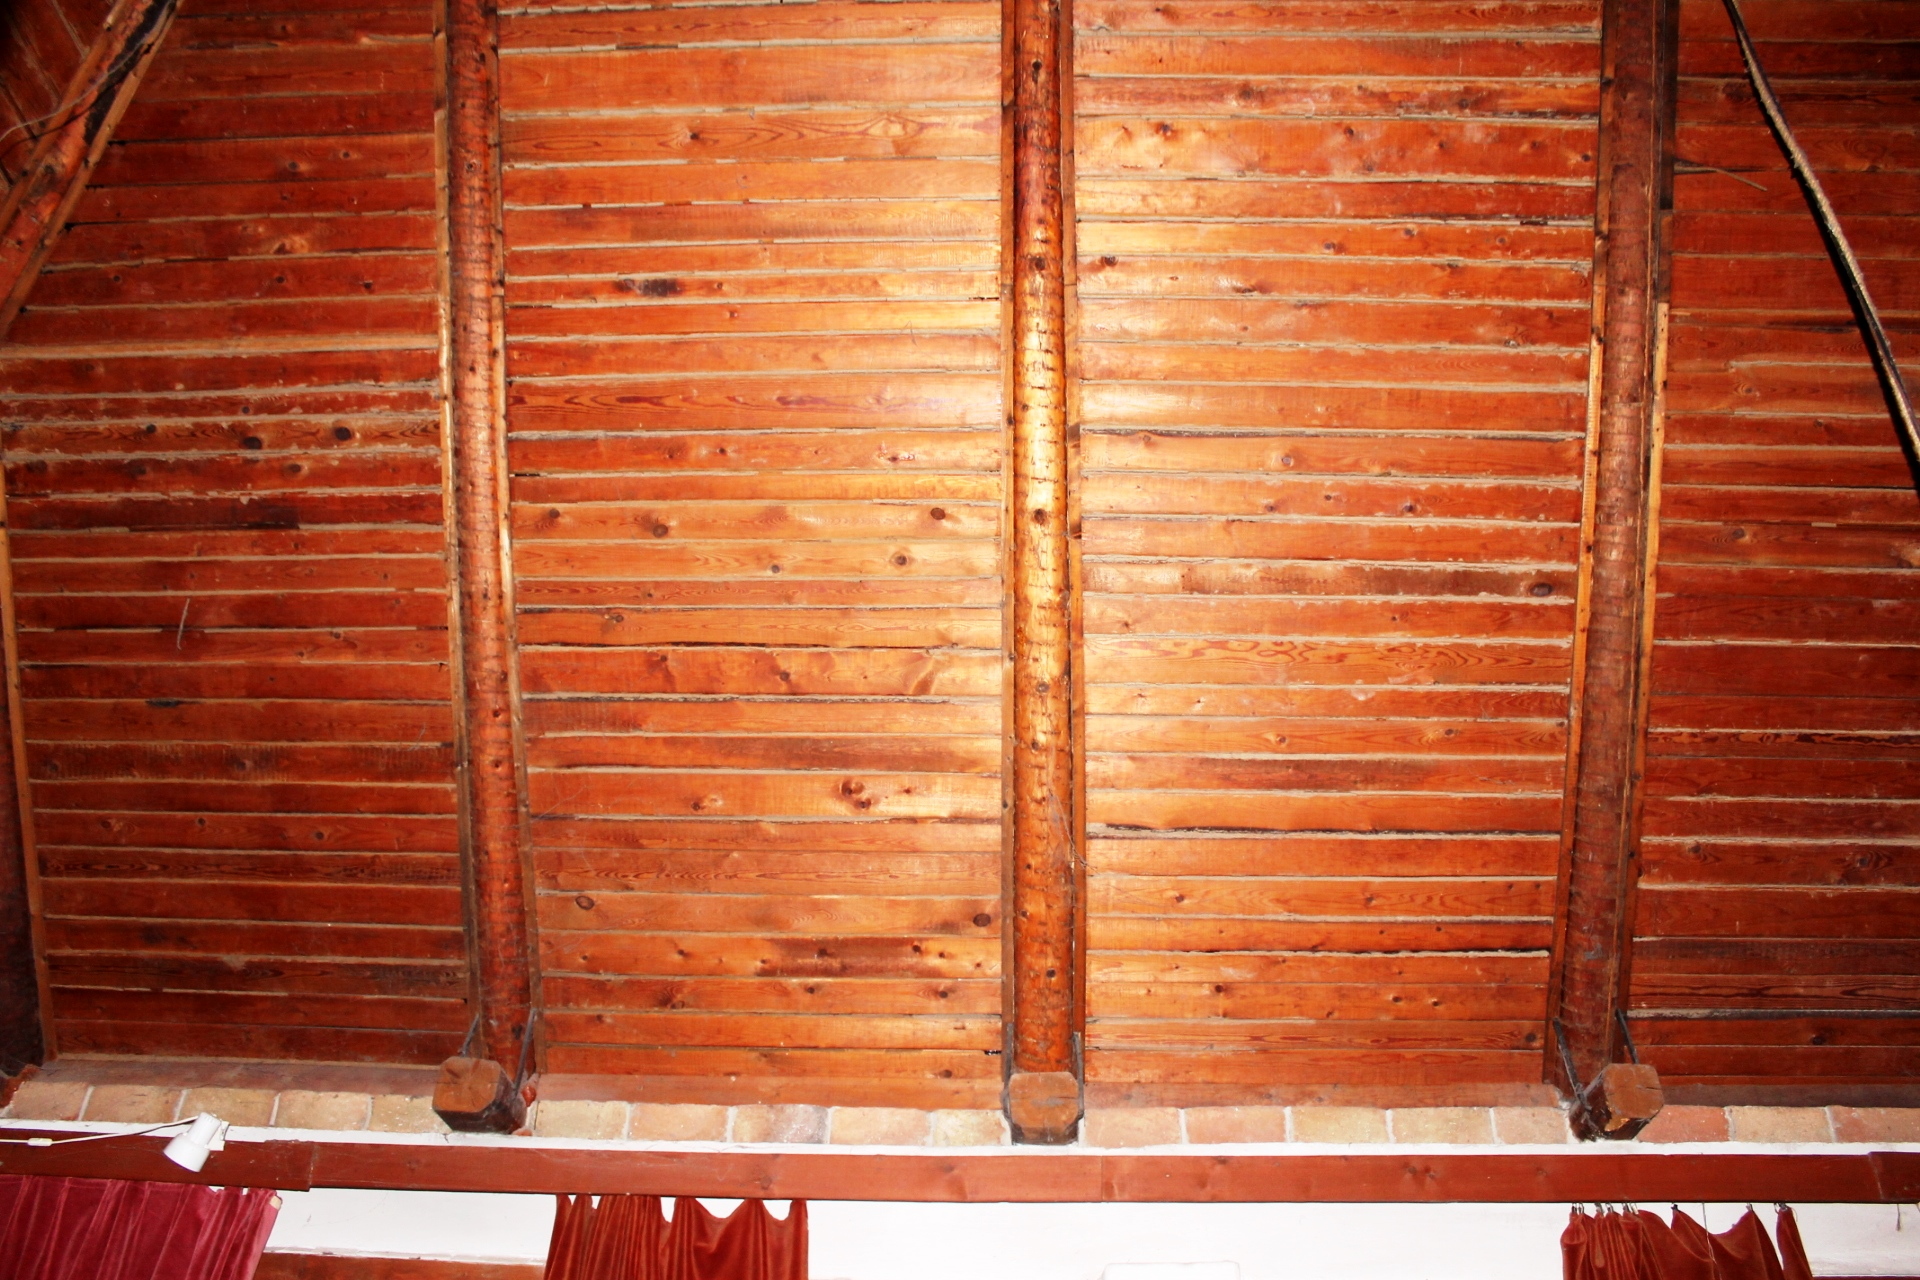 The wooden ceiling in the room named 'common'